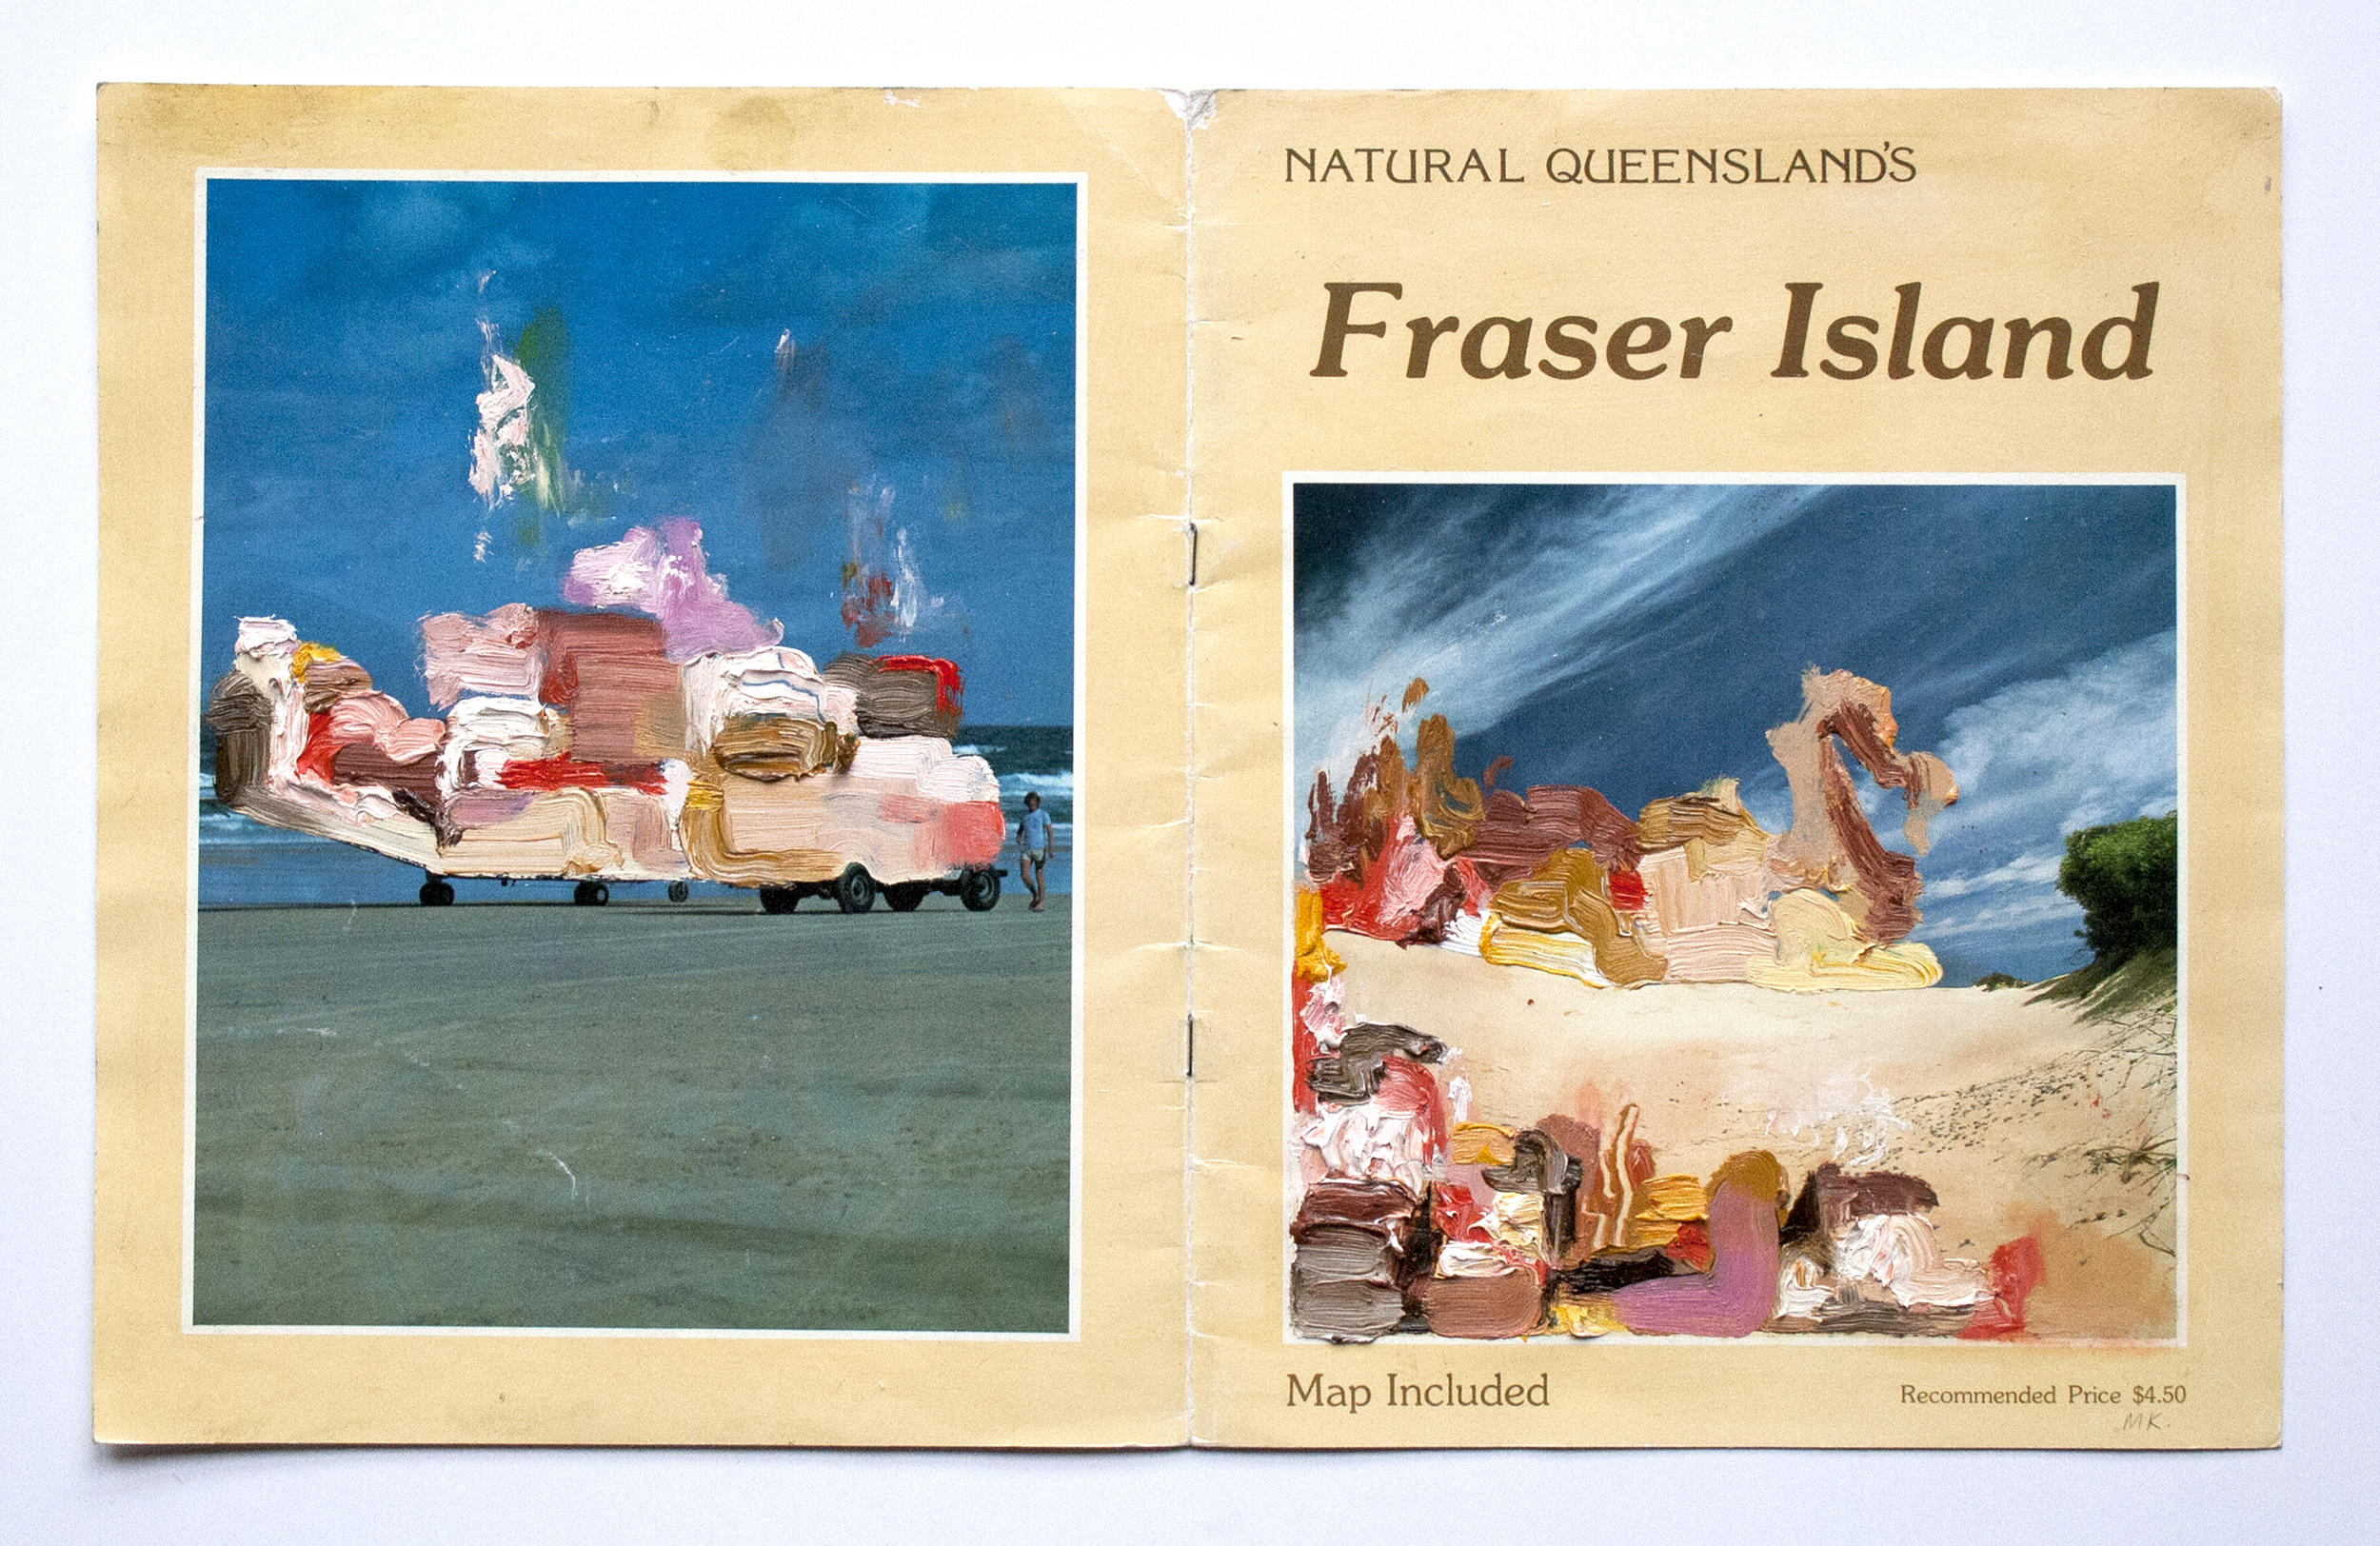 Fraser Island Double Spread  2014  Oil and PVA glue on magazine  42 x 29.7 cm